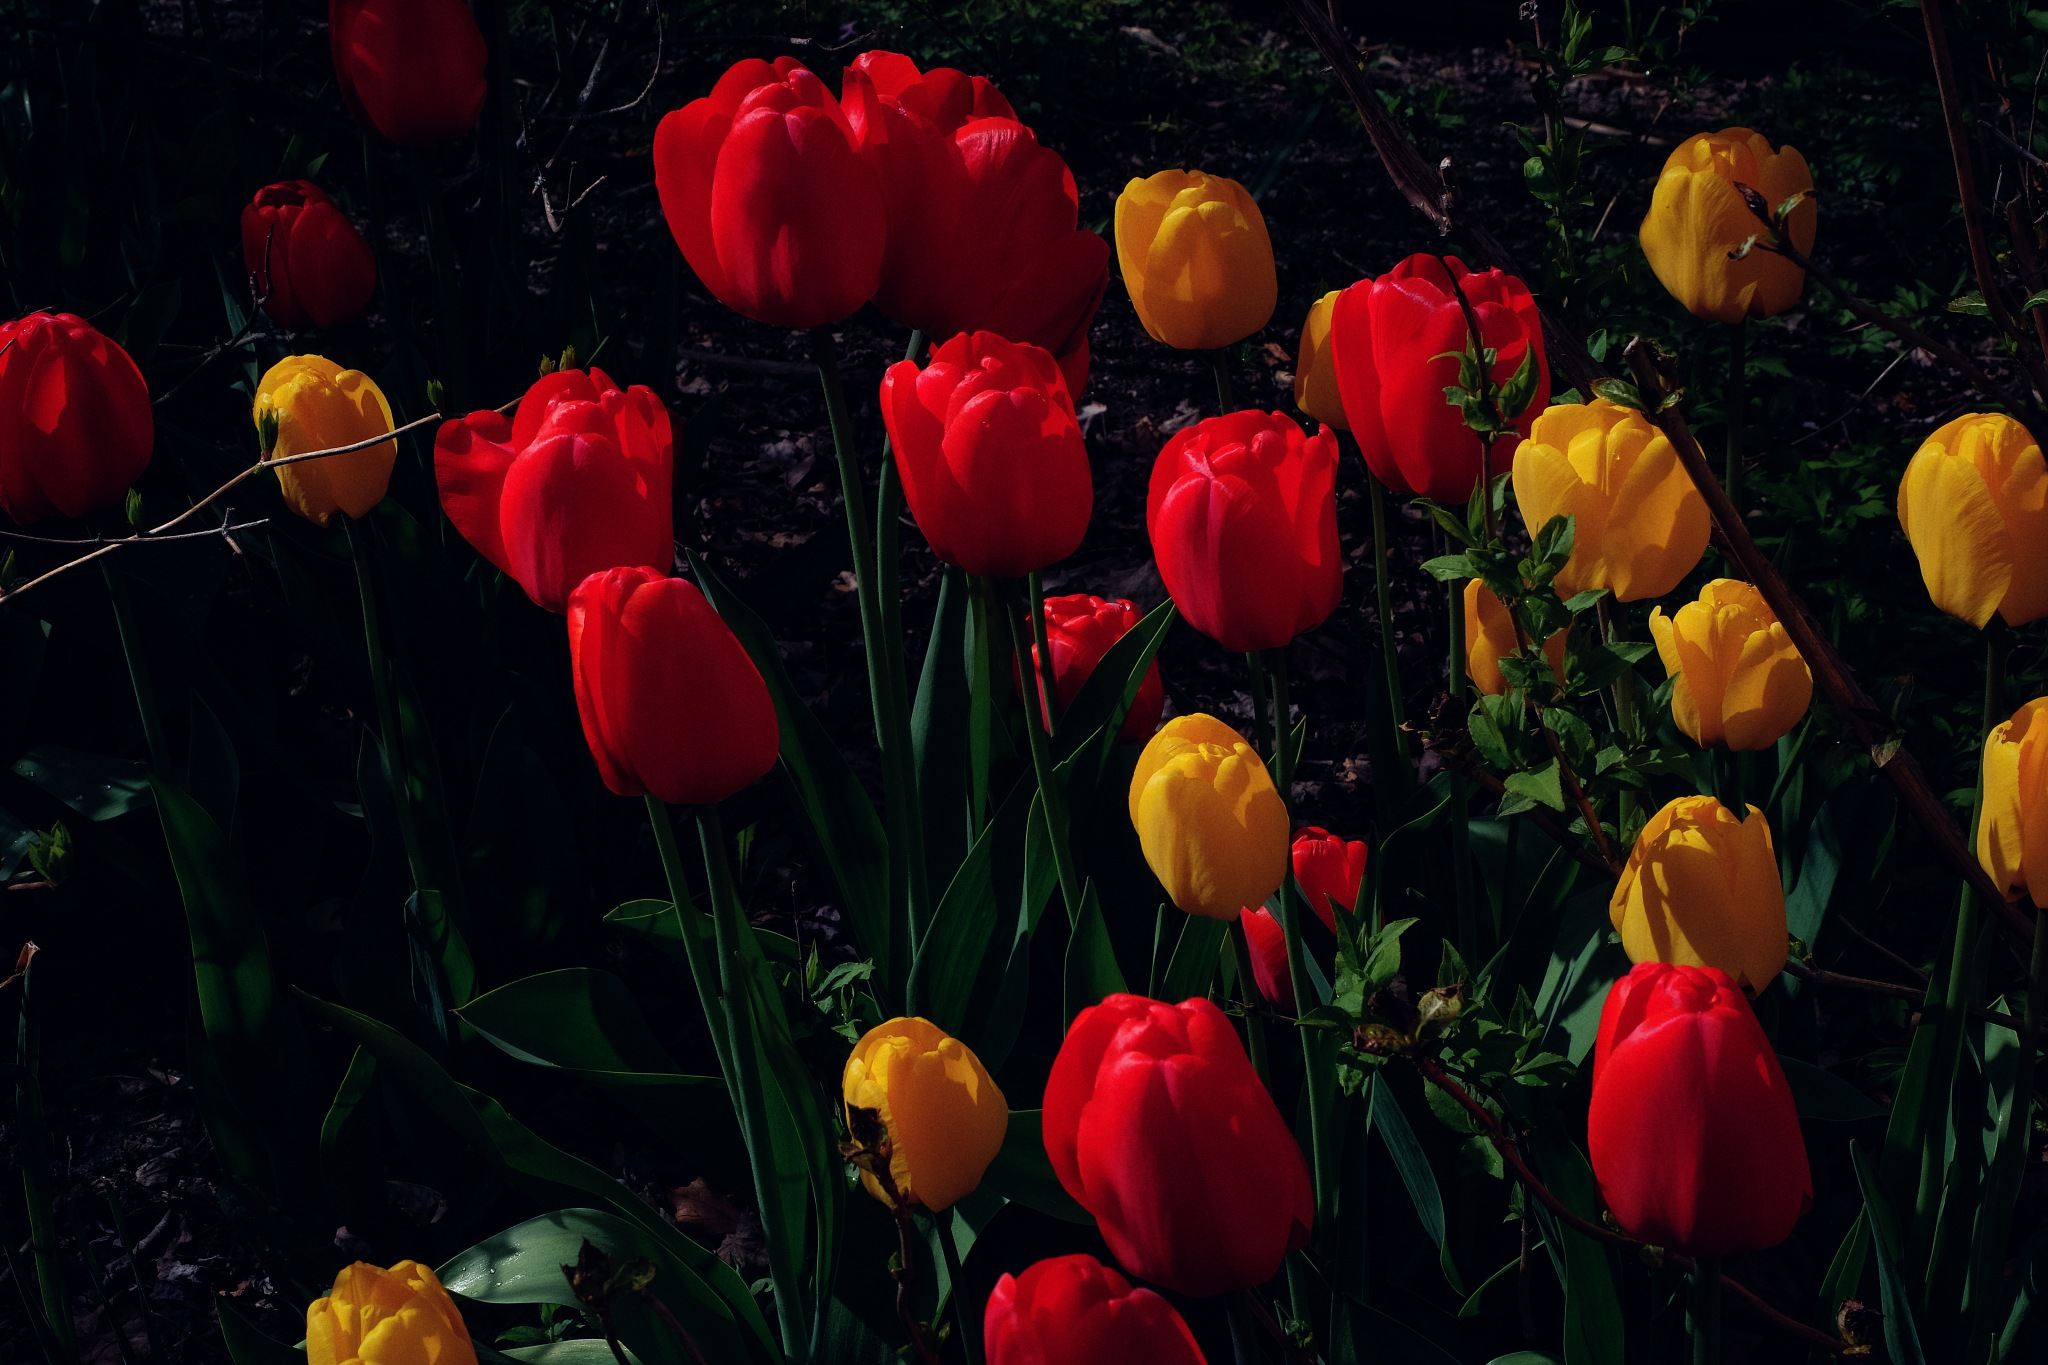 TULIPS ARE BACK TO NORWAY by Goran Jorganovich